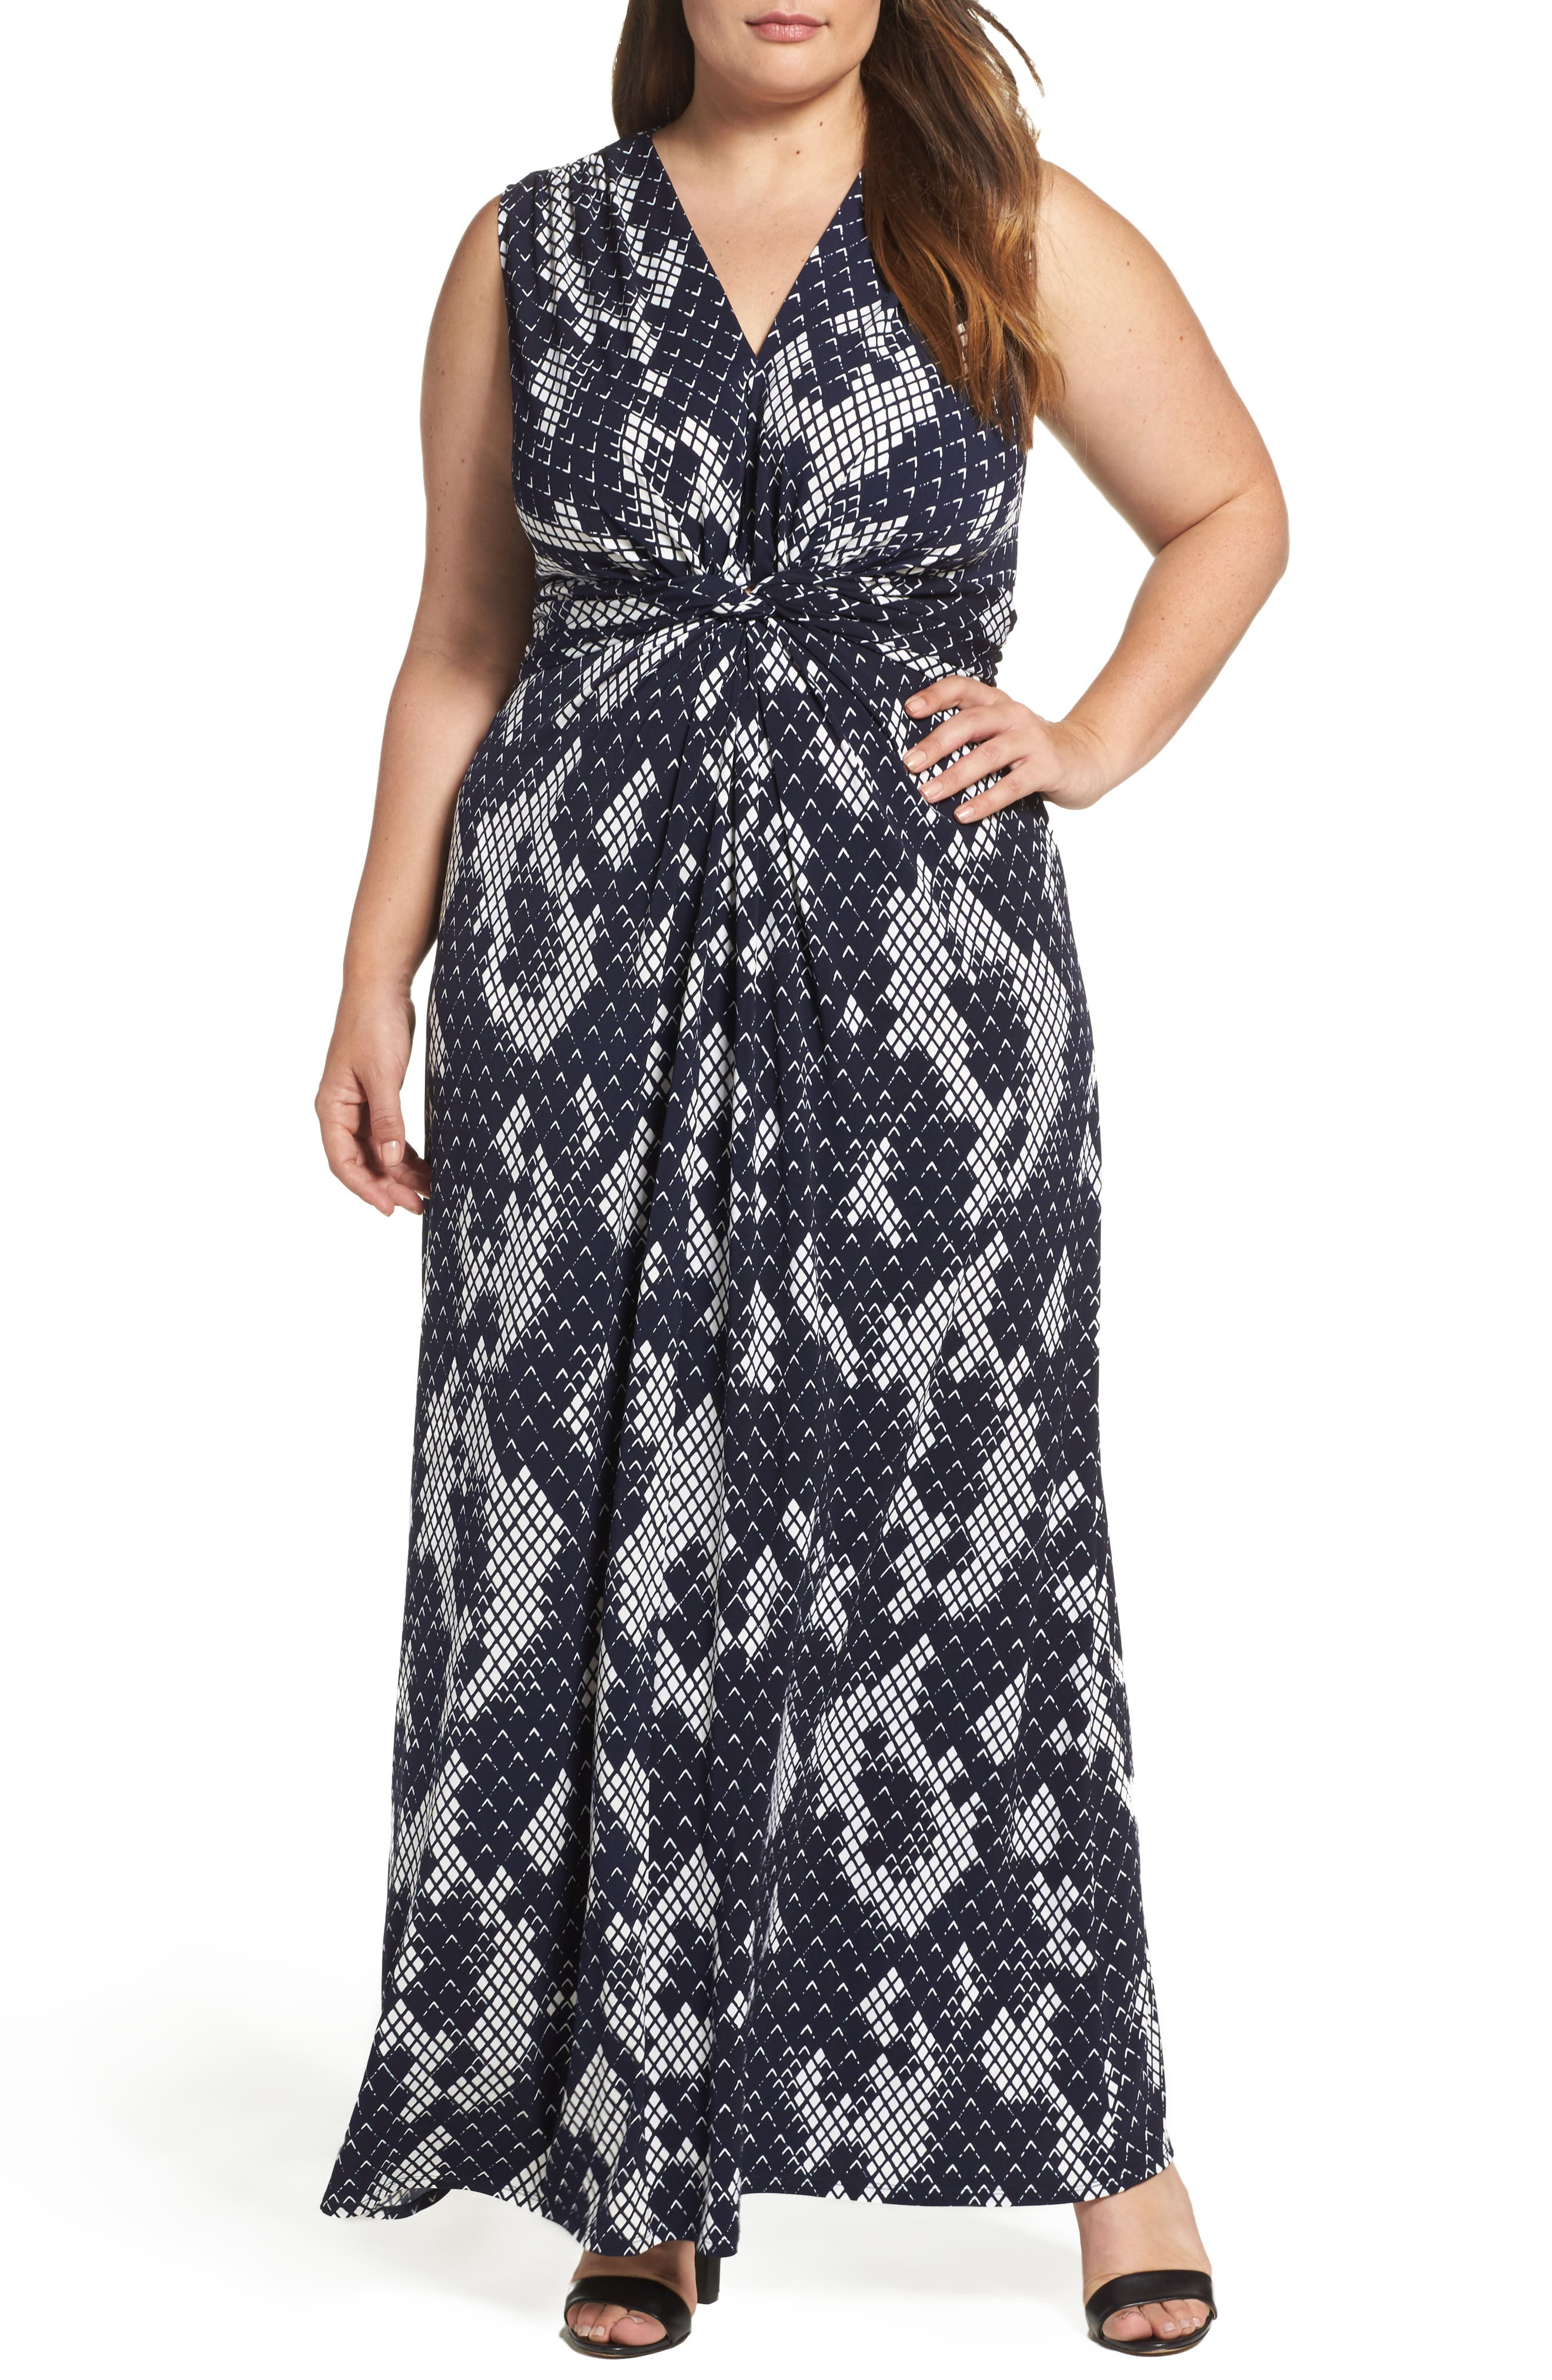 Alternate Image 1 Selected - Eliza J Knot Front Maxi Dress (Plus Size)